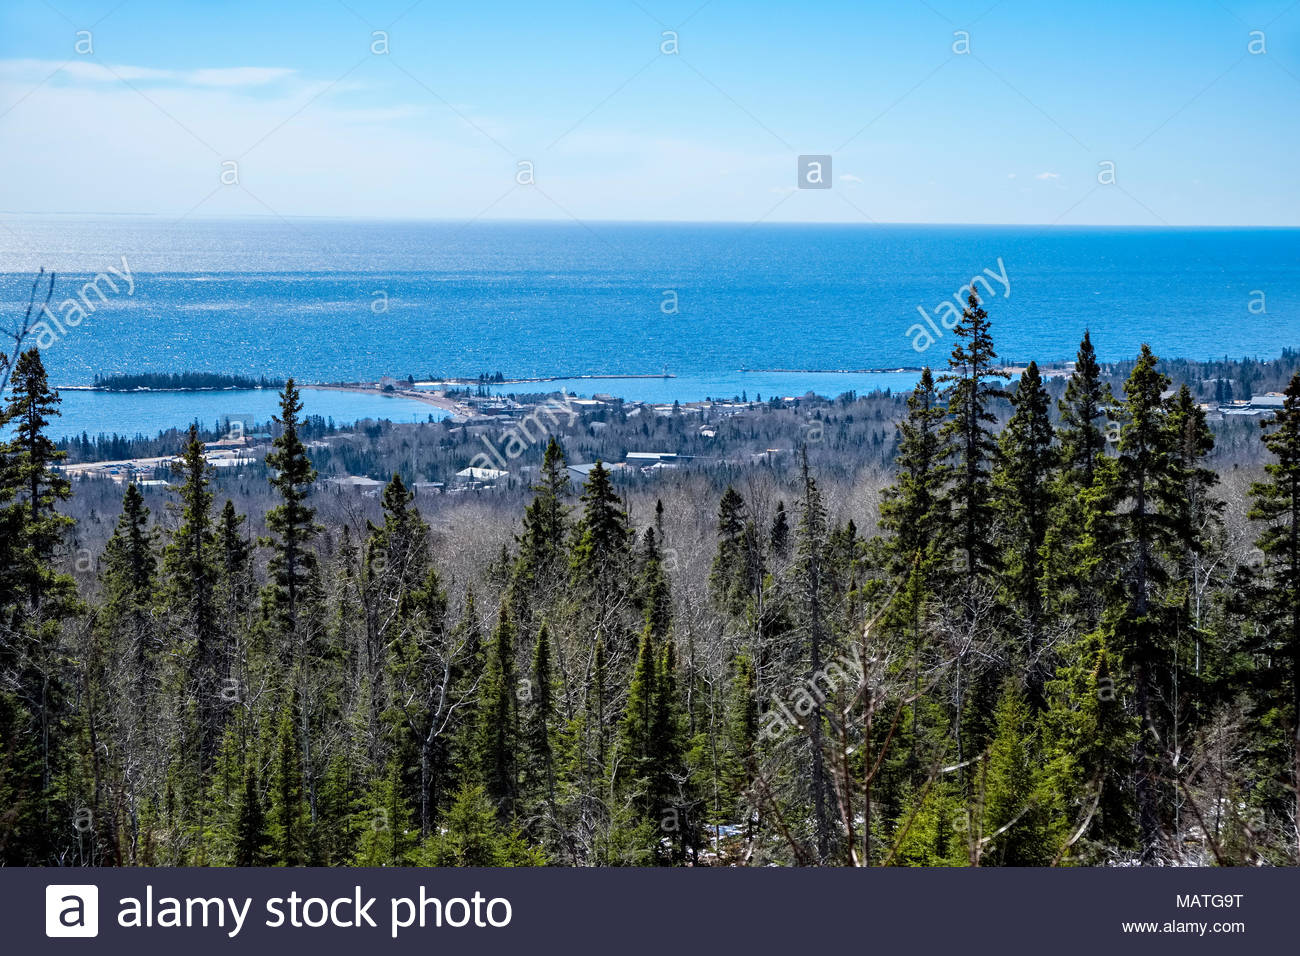 The view of Grand Marais from the trailhead parking area of the Pincushion Mountain Trail System, on the north shore of Lake Superior, Minnesota. - Stock Image